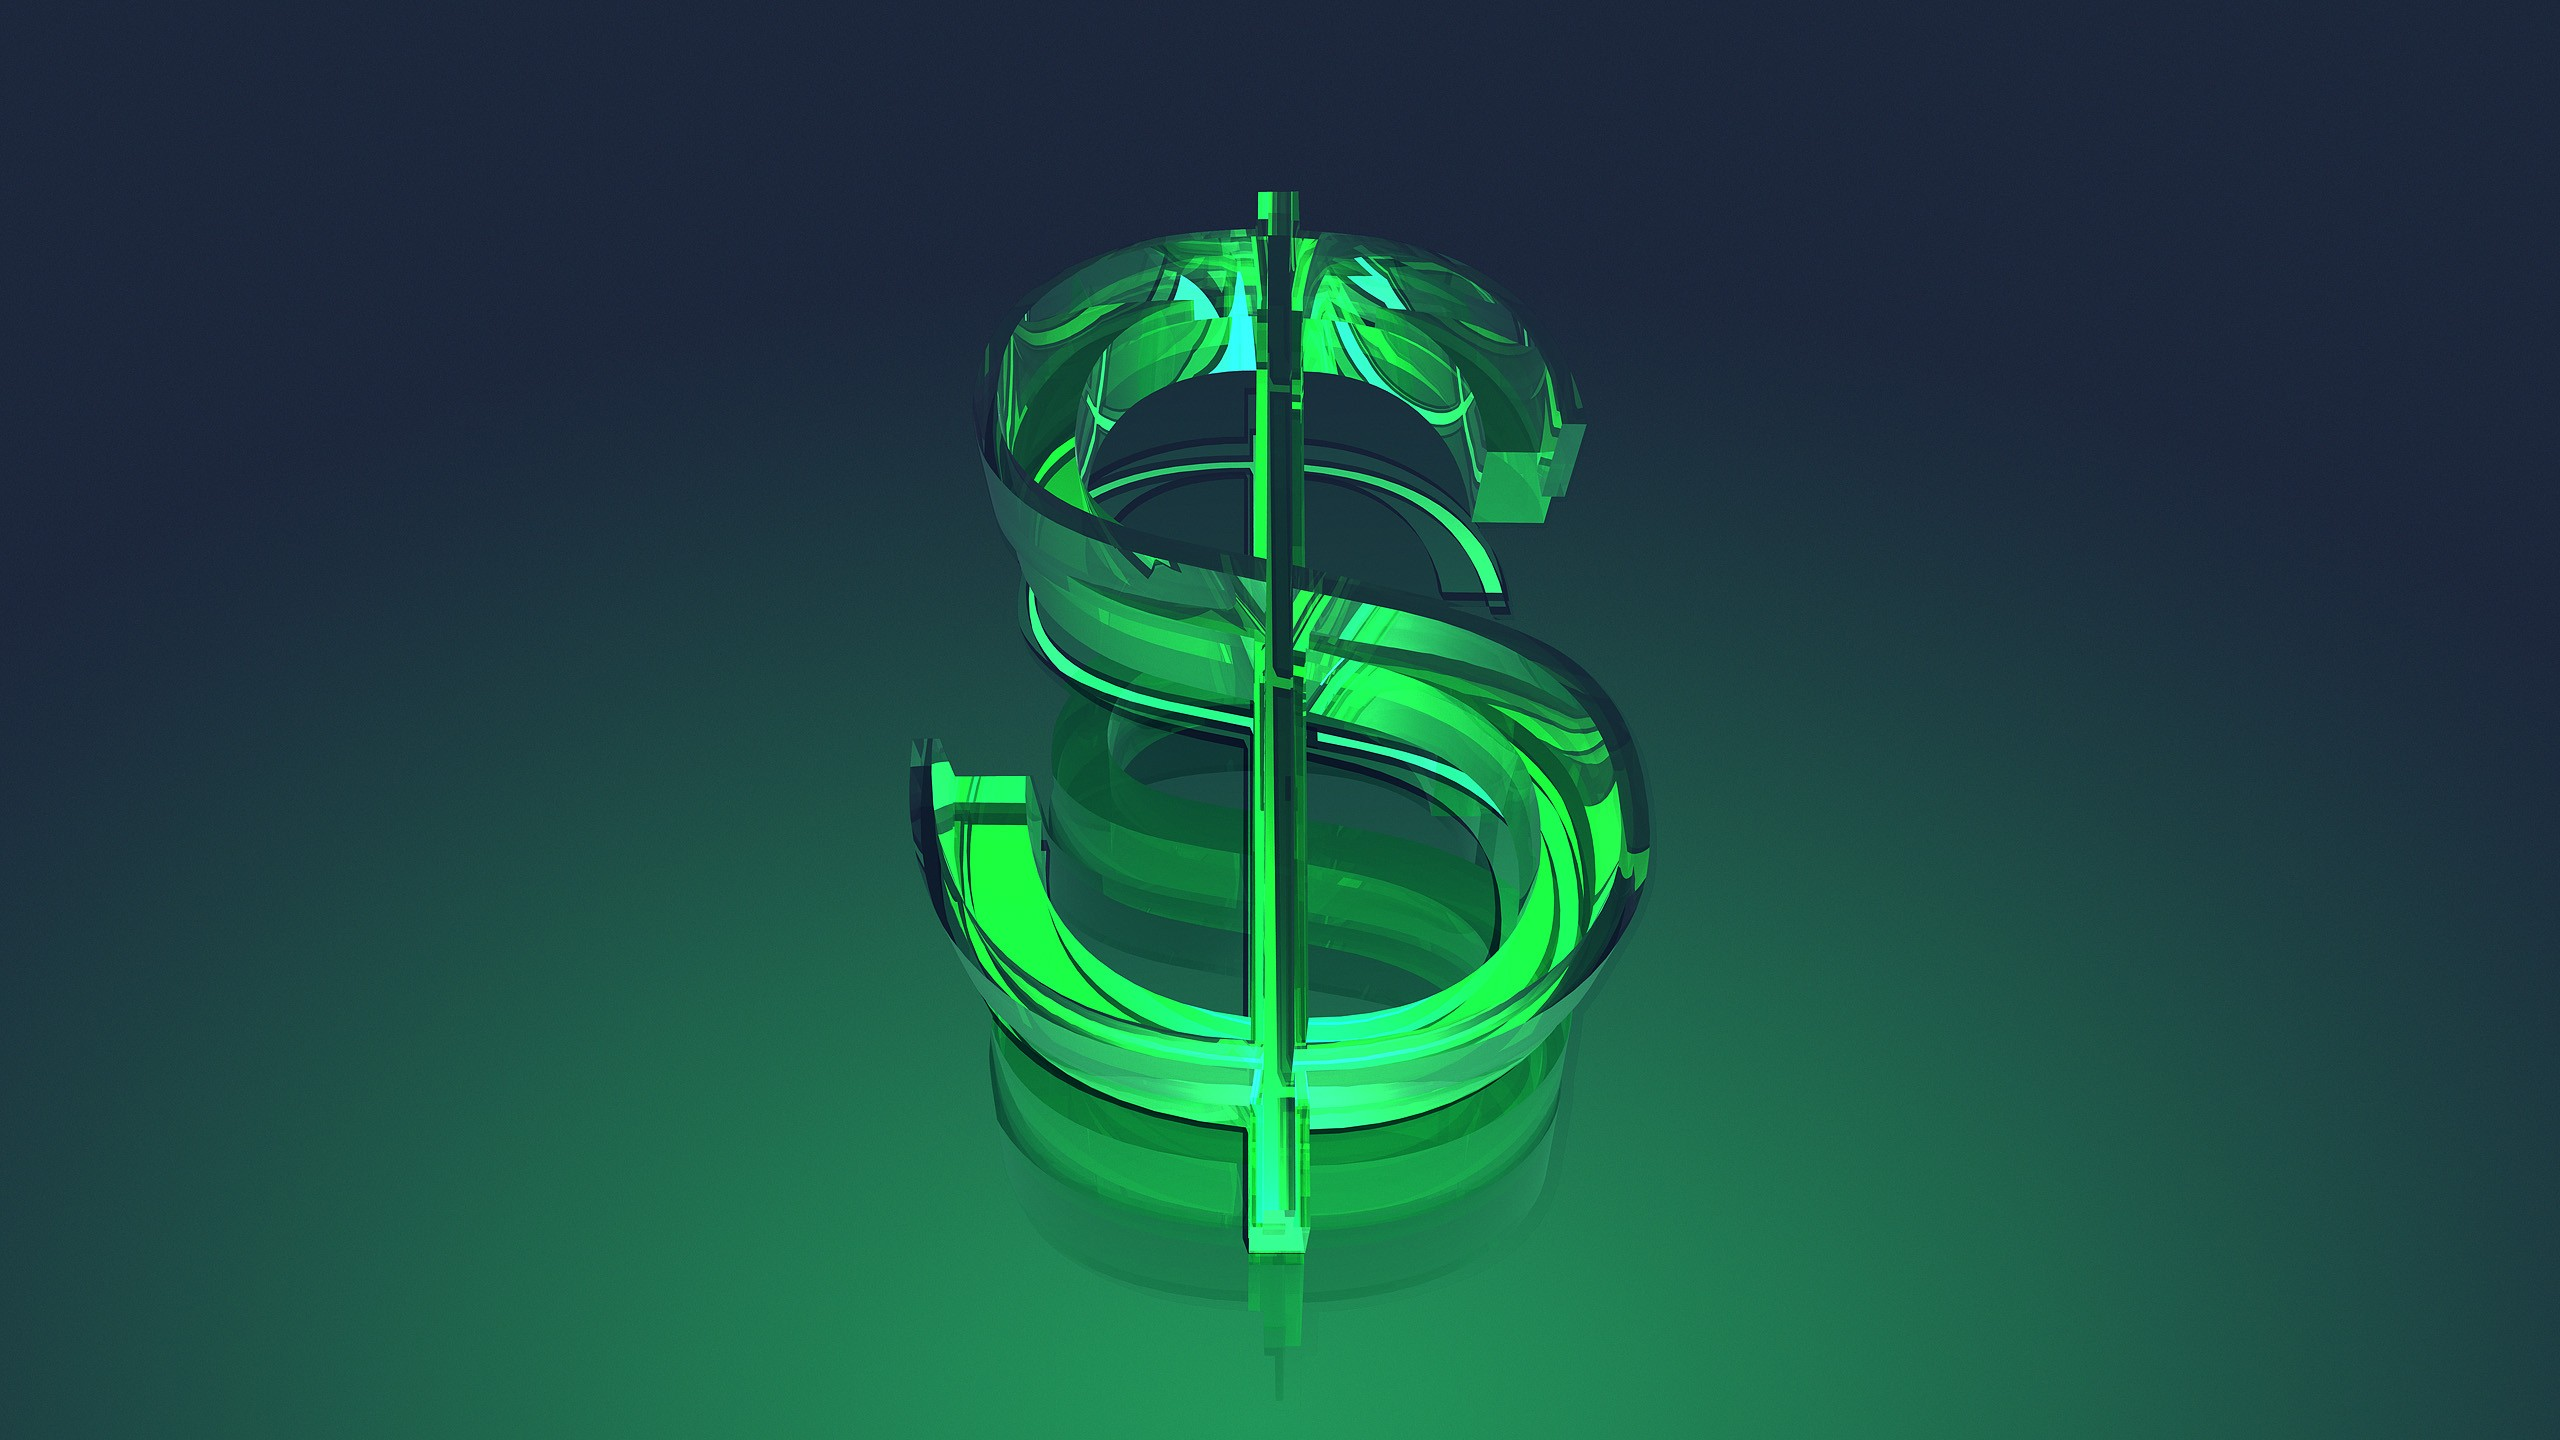 Dollar Sign Wallpapers HD 2560x1440